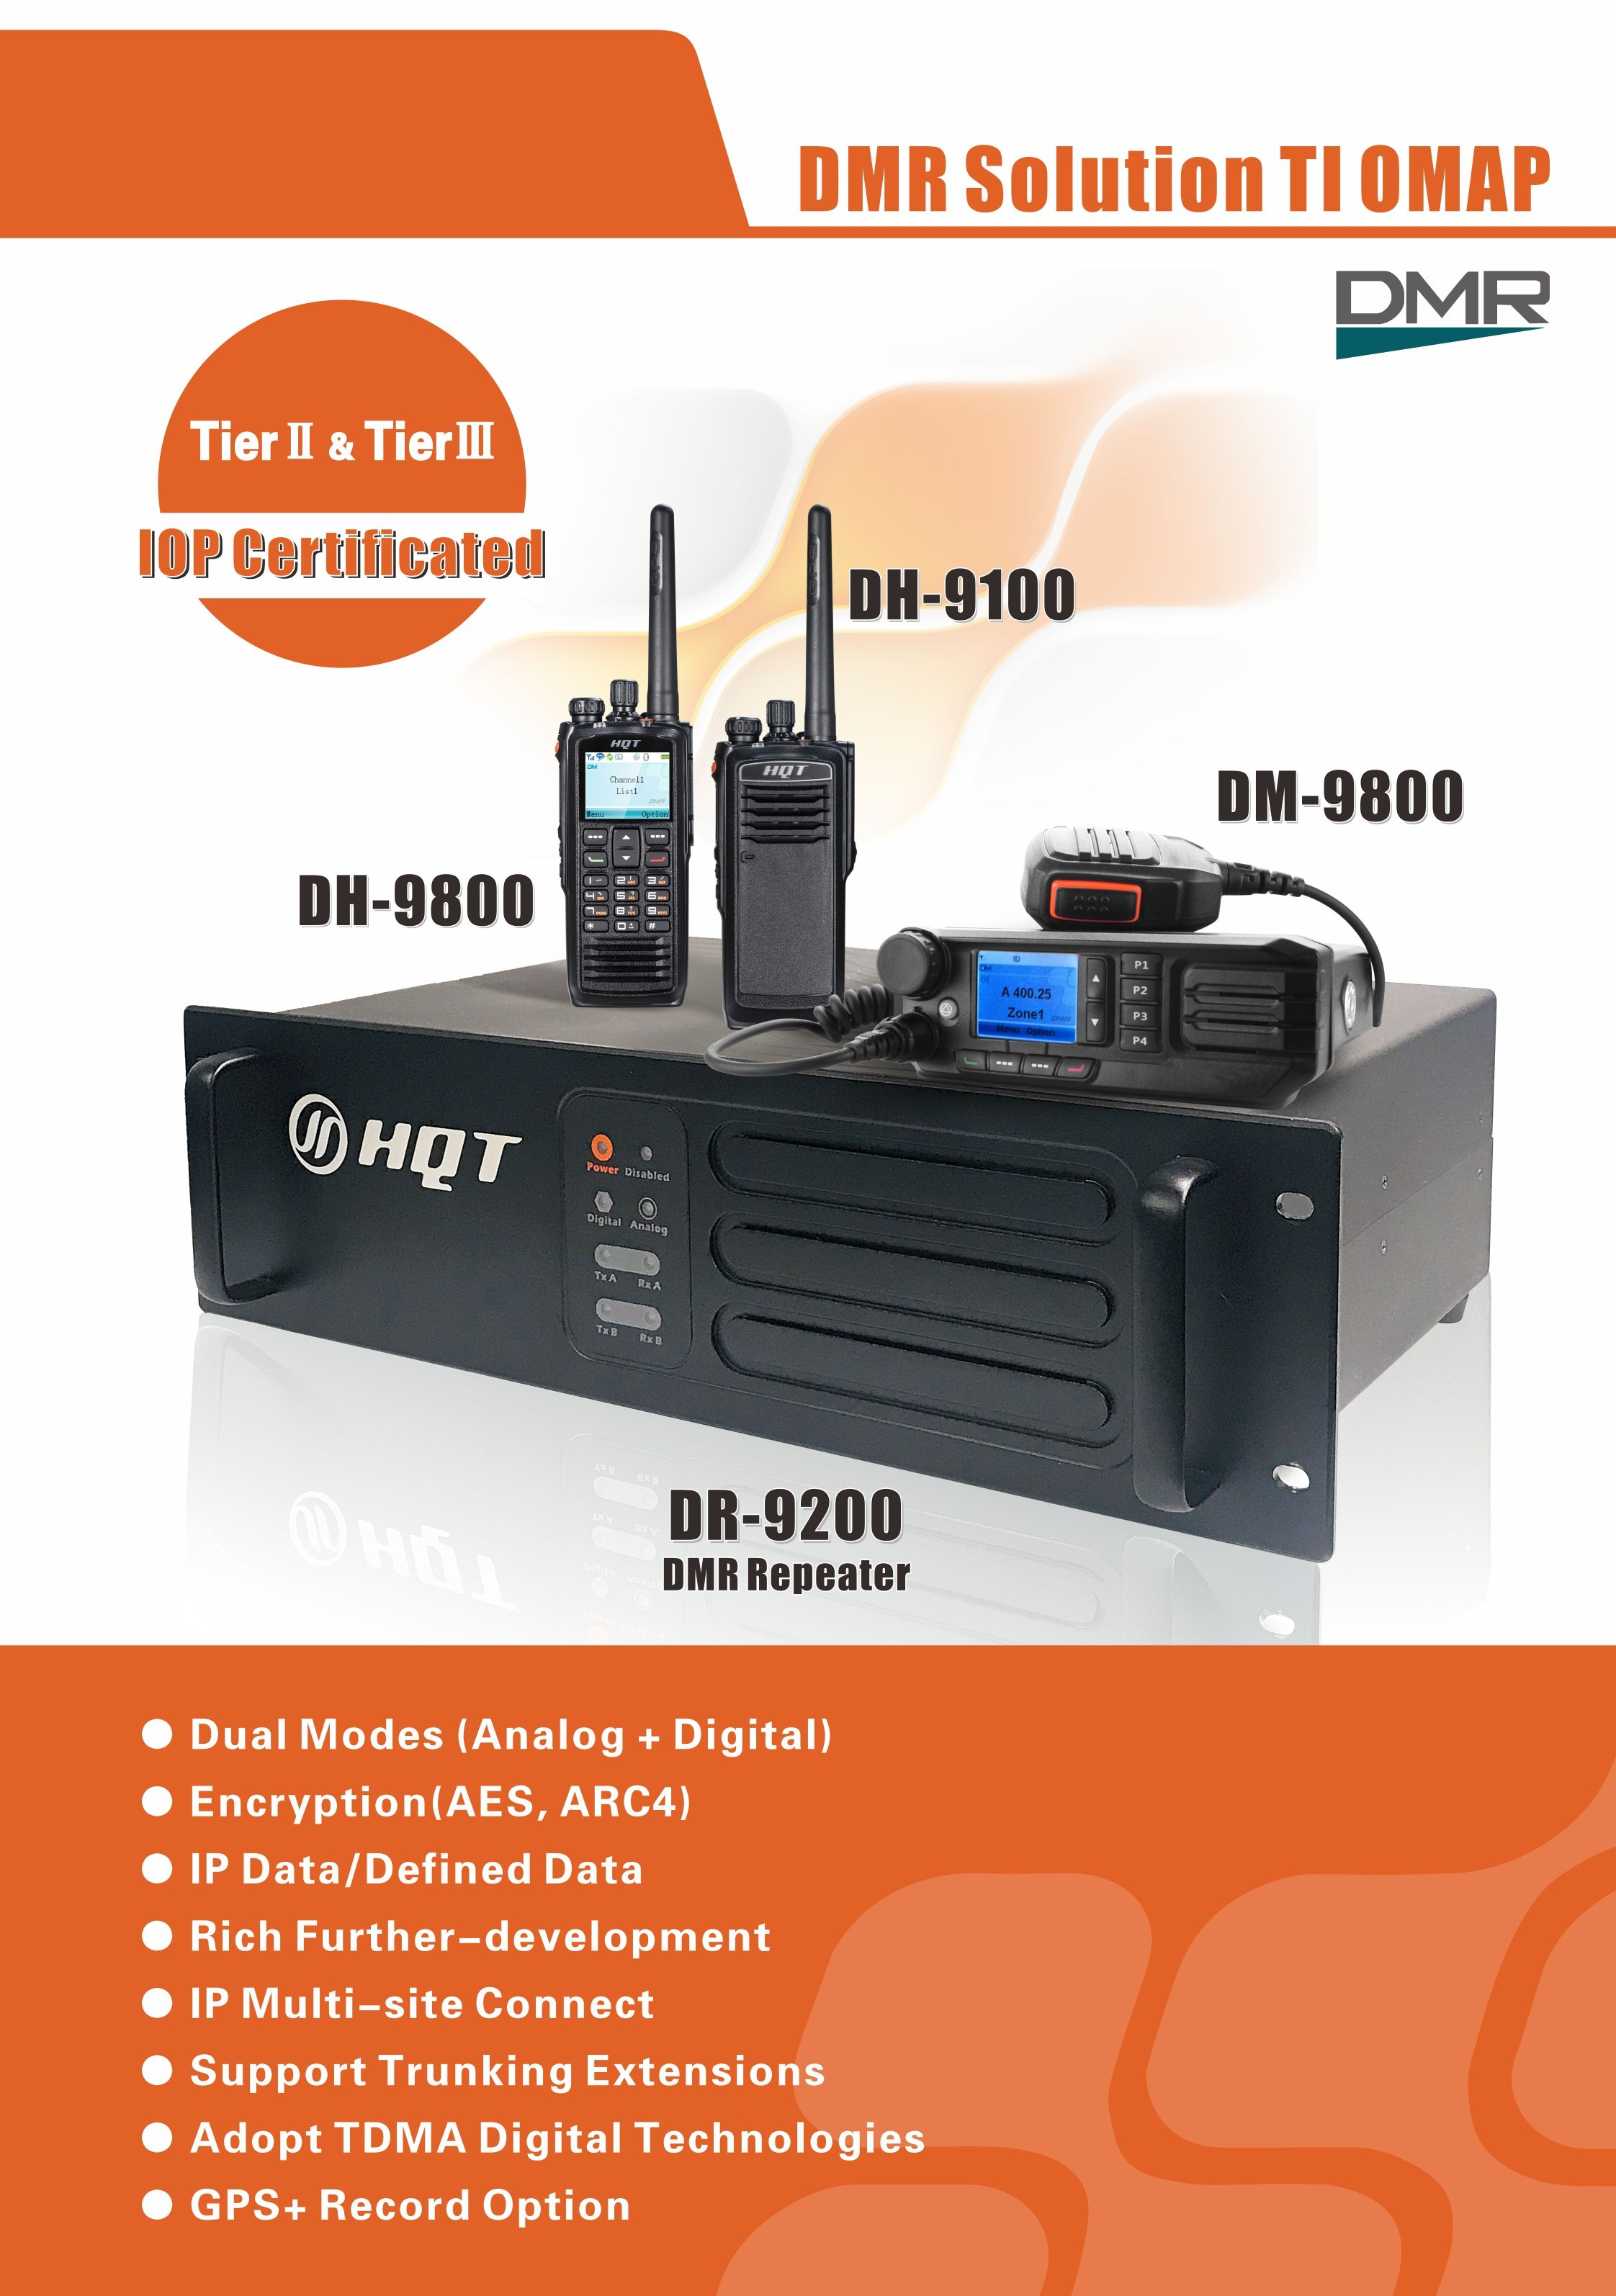 HQT DH-9800, DH-9100, DM-9800 and DR-9200, high-end products